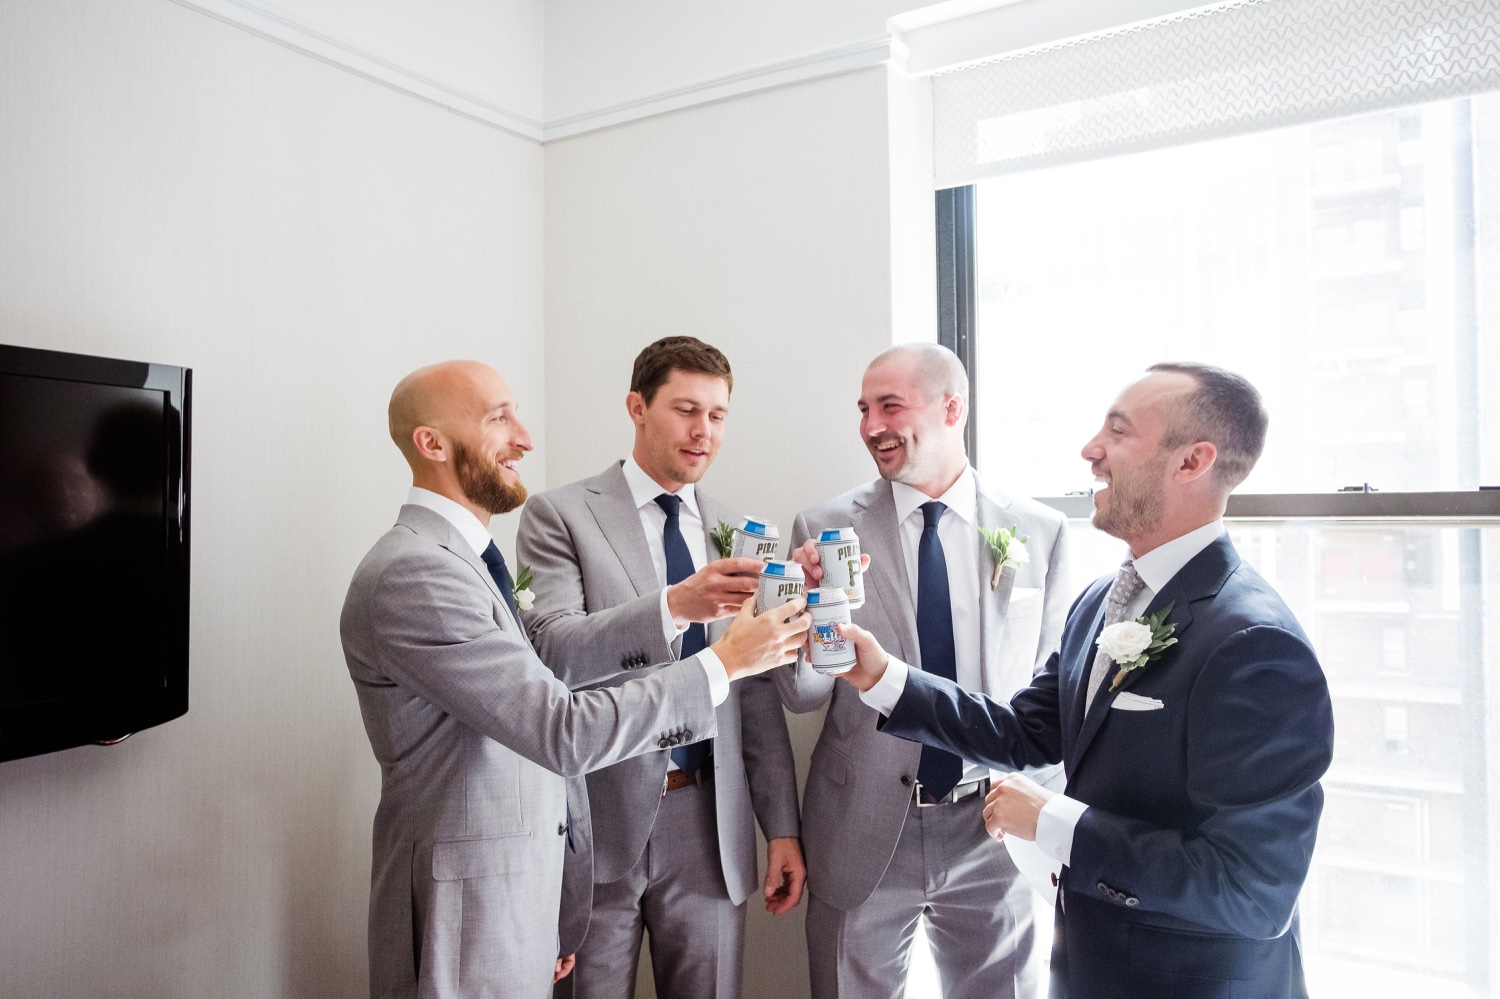 The Redbury Hotel, The Redbury Hotel Wedding, The Redbury Hotel Wedding Photos, Manhattan Wedding, Manhattan Wedding Photographer, Best NYC Wedding Photographer, New York City Wedding, Manhattan Groomsmen